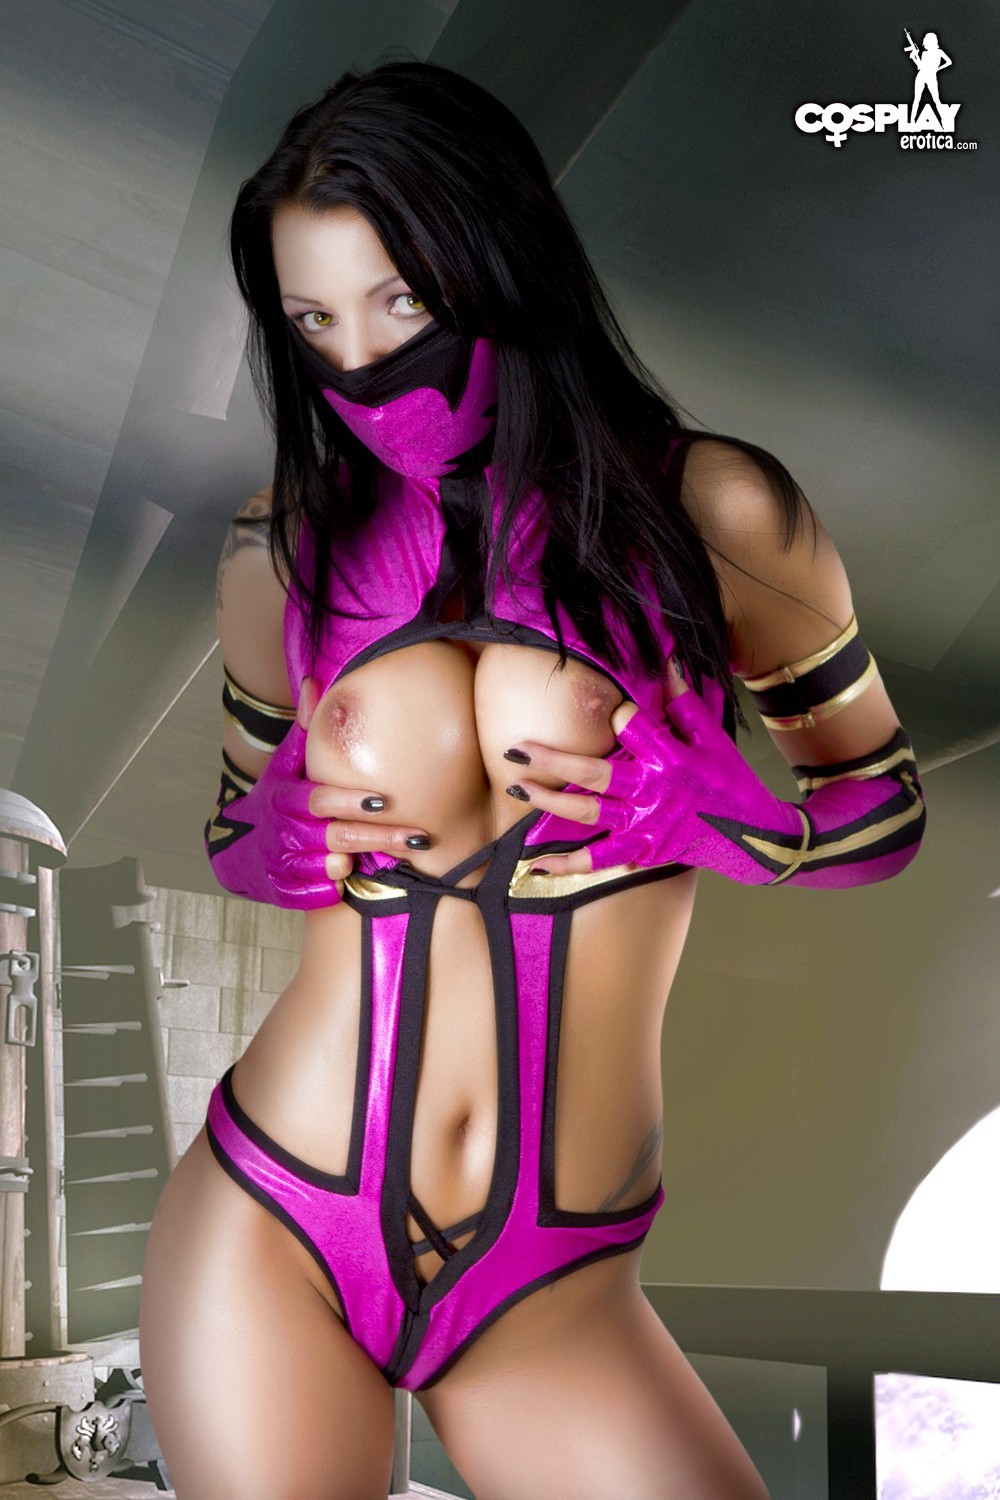 Mortal kombat sexy girls panties erotica video